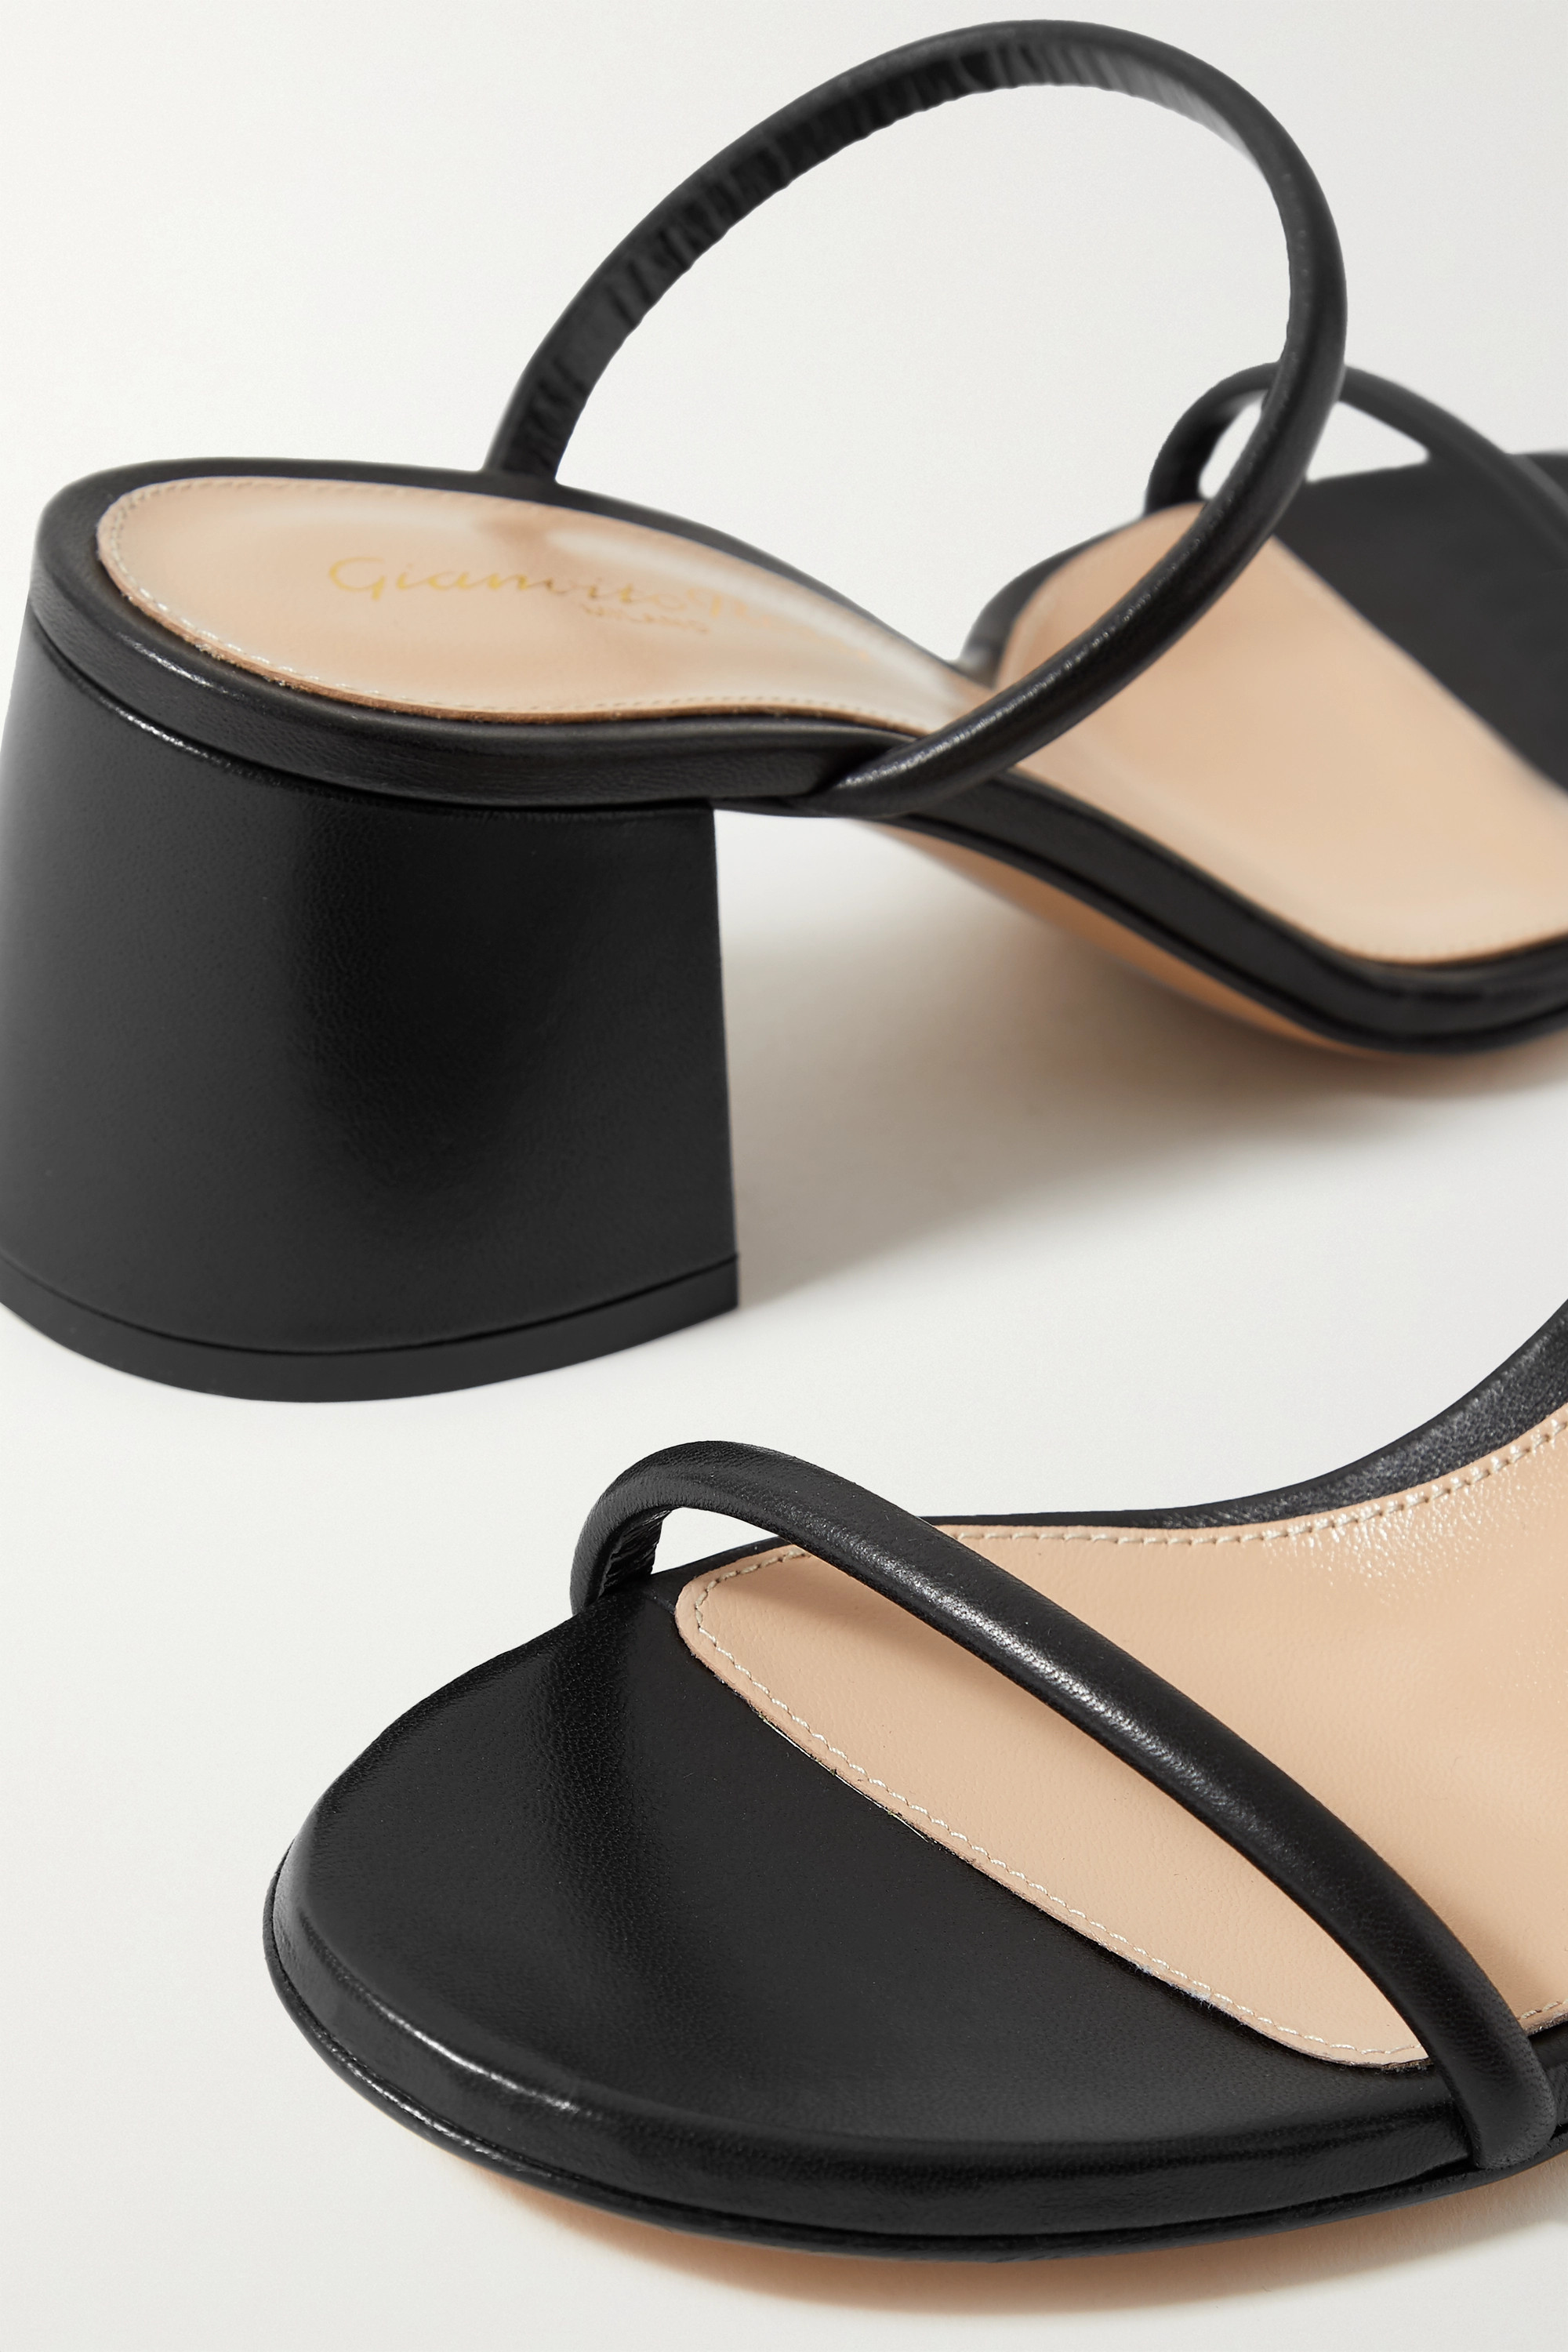 GIANVITO ROSSI Byblos 60 leather mules